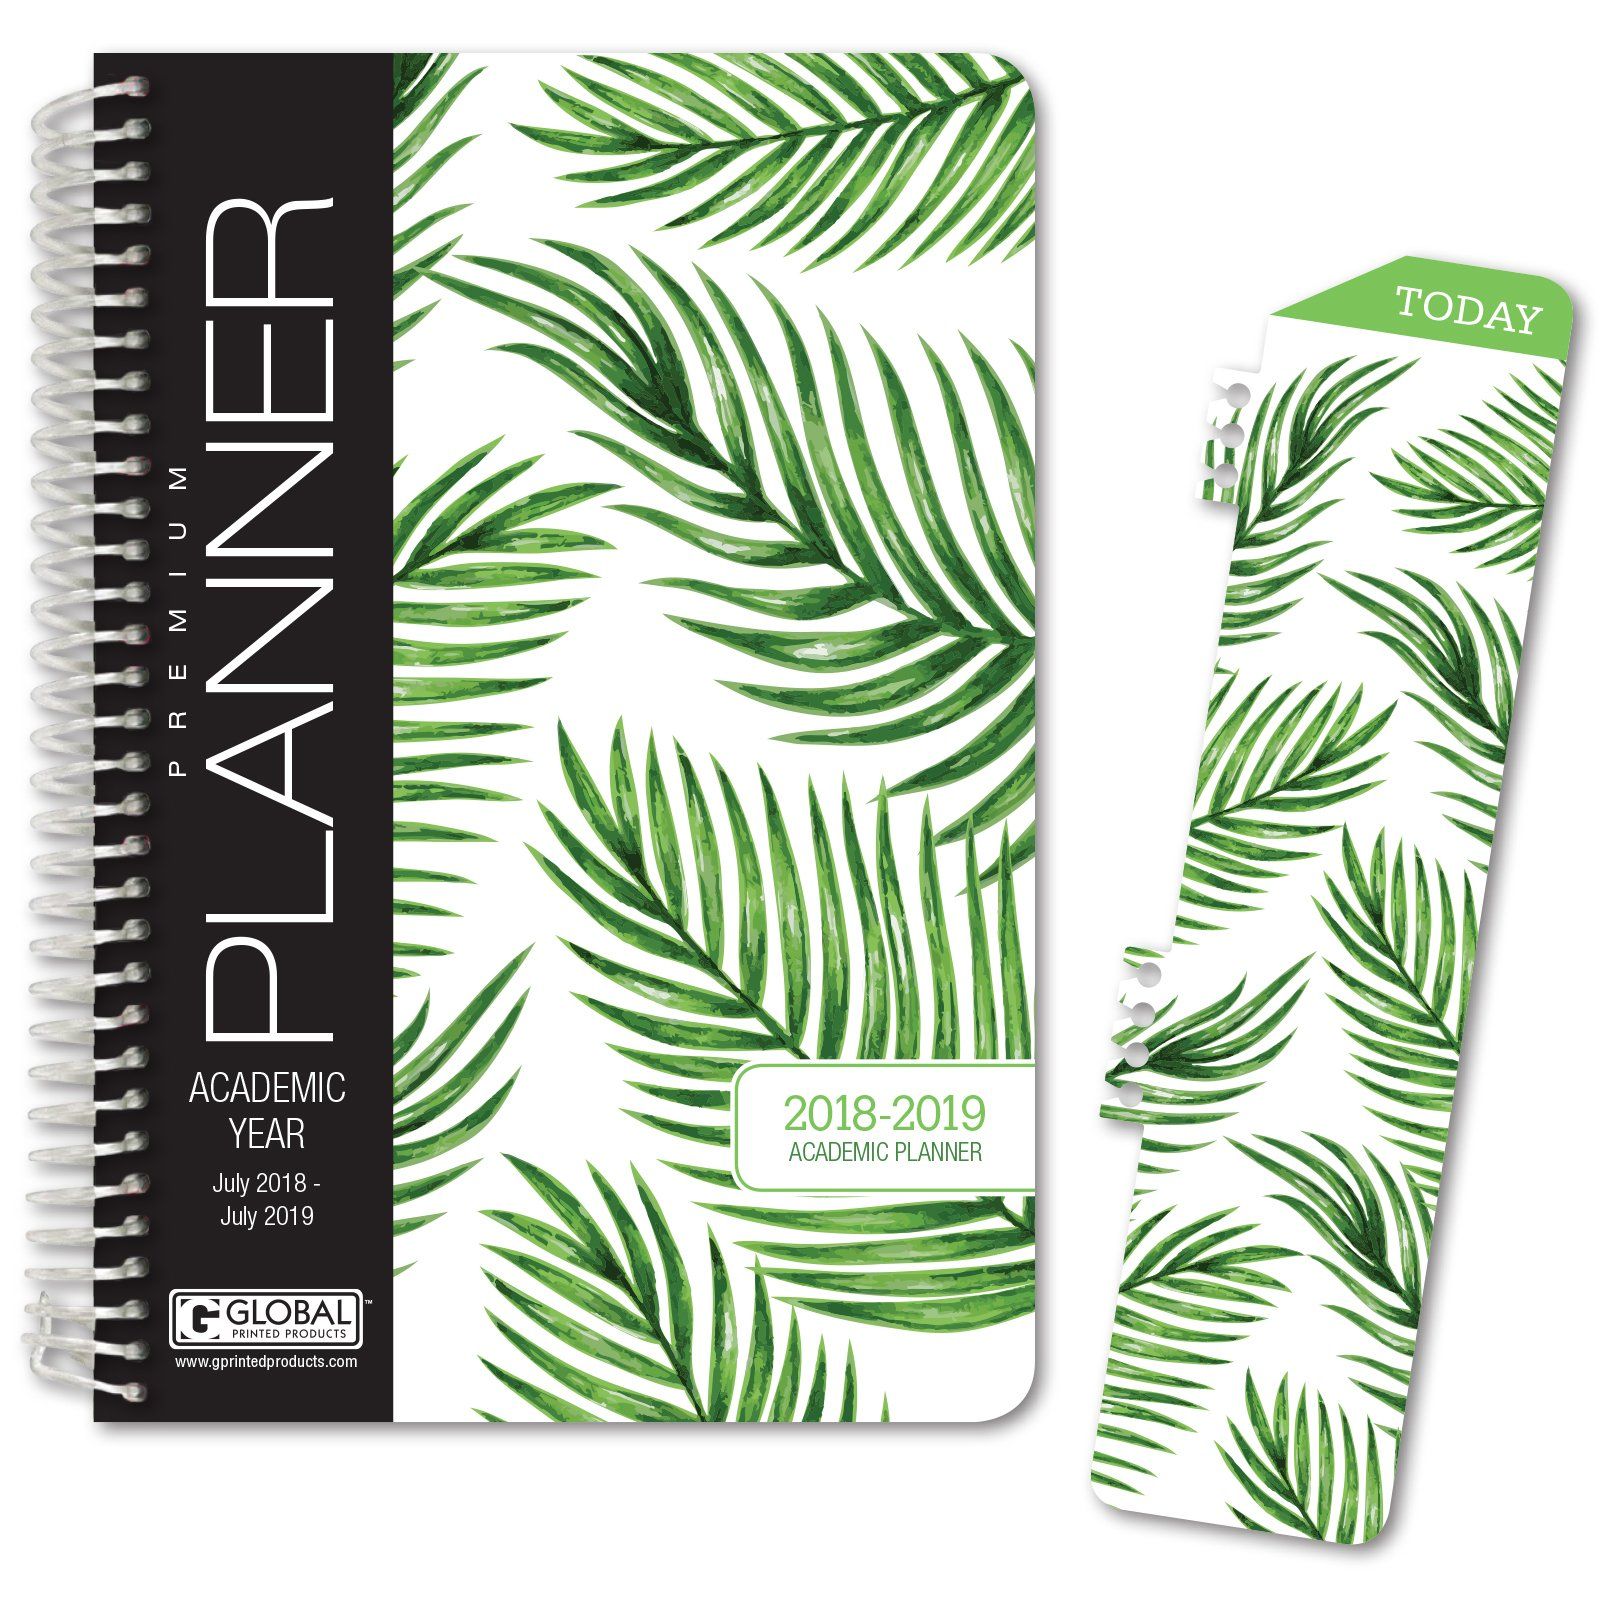 HARDCOVER Academic Year Planner 2018-2019 - 5.5''x8'' Daily Planner/Weekly Planner/Monthly Planner/Yearly Agenda. Bonus Bookmark (Palm Tree)